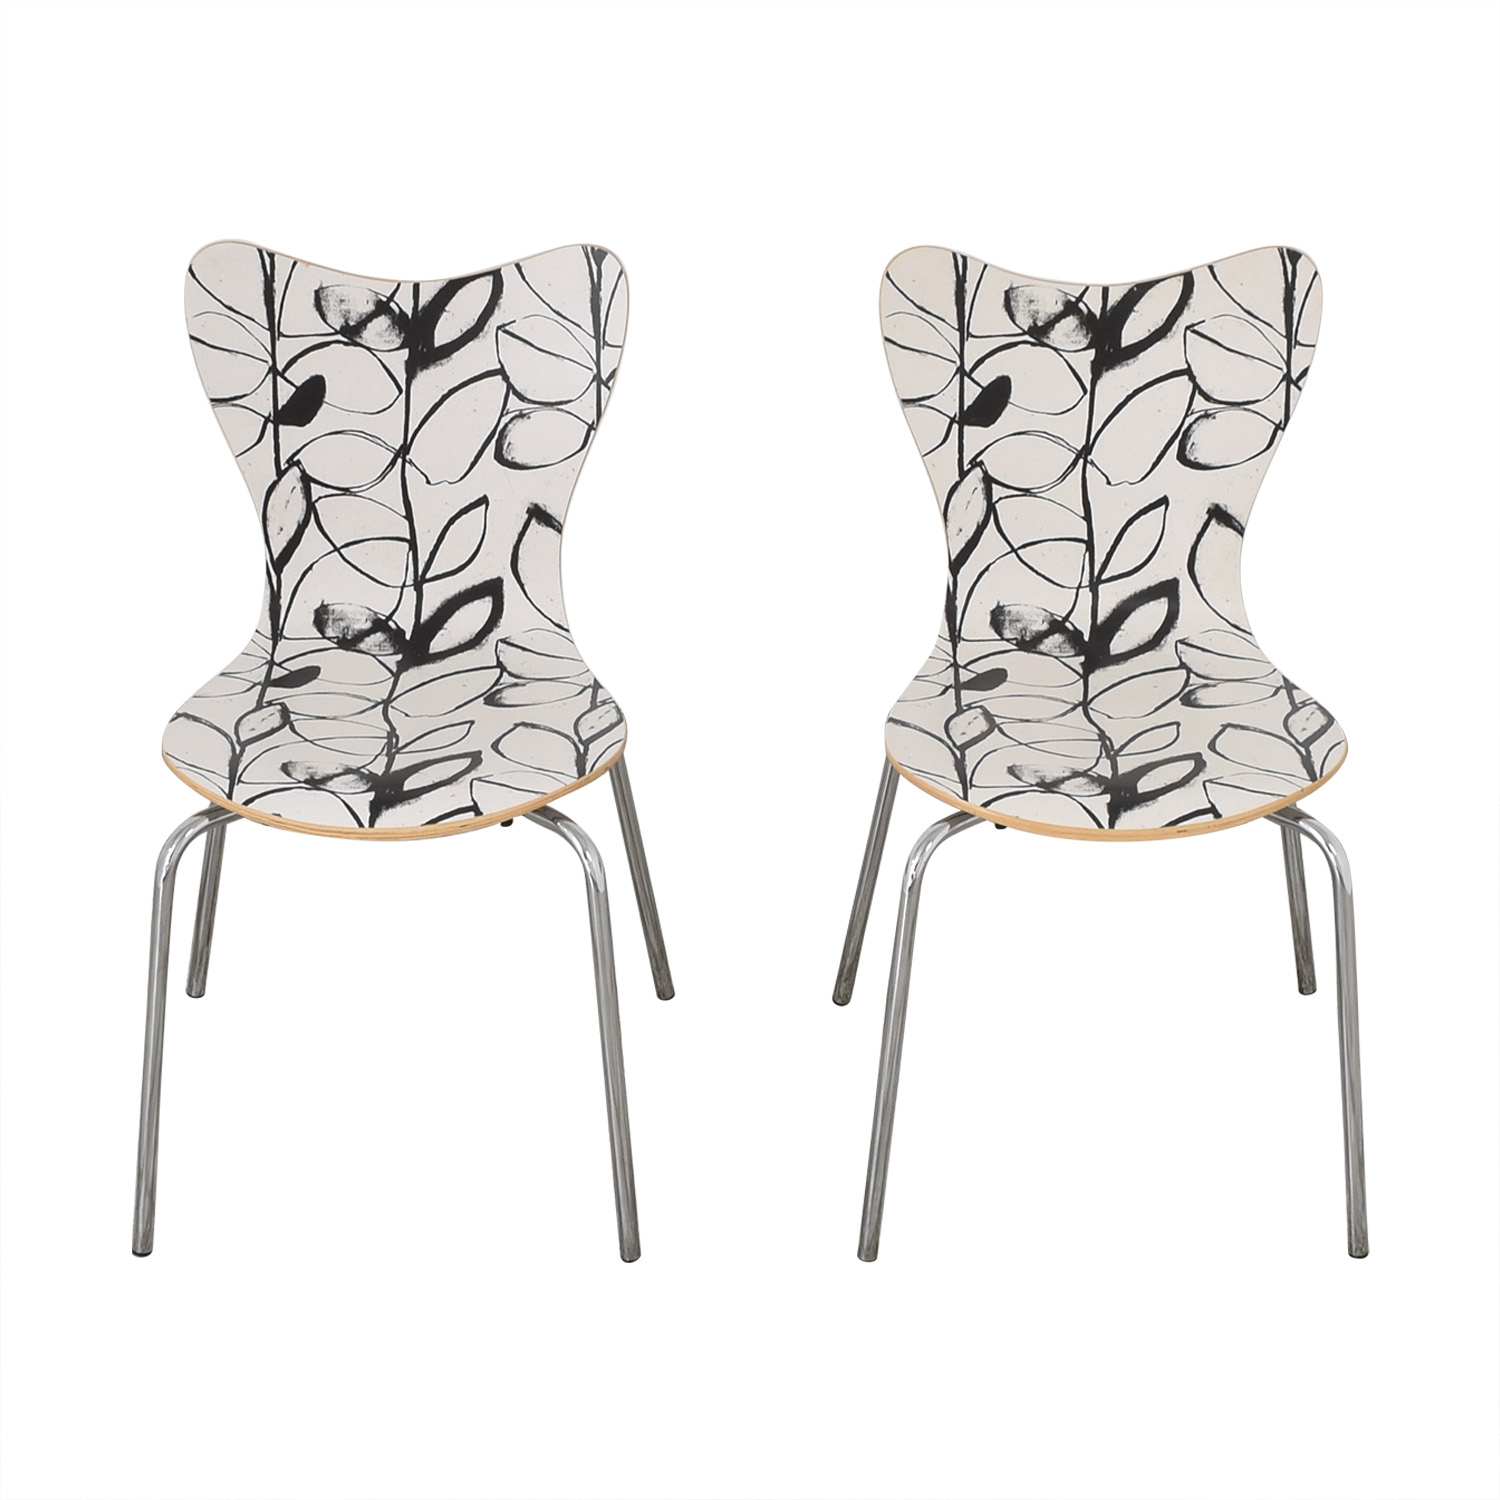 West Elm West Elm Decorative Dining Chairs used